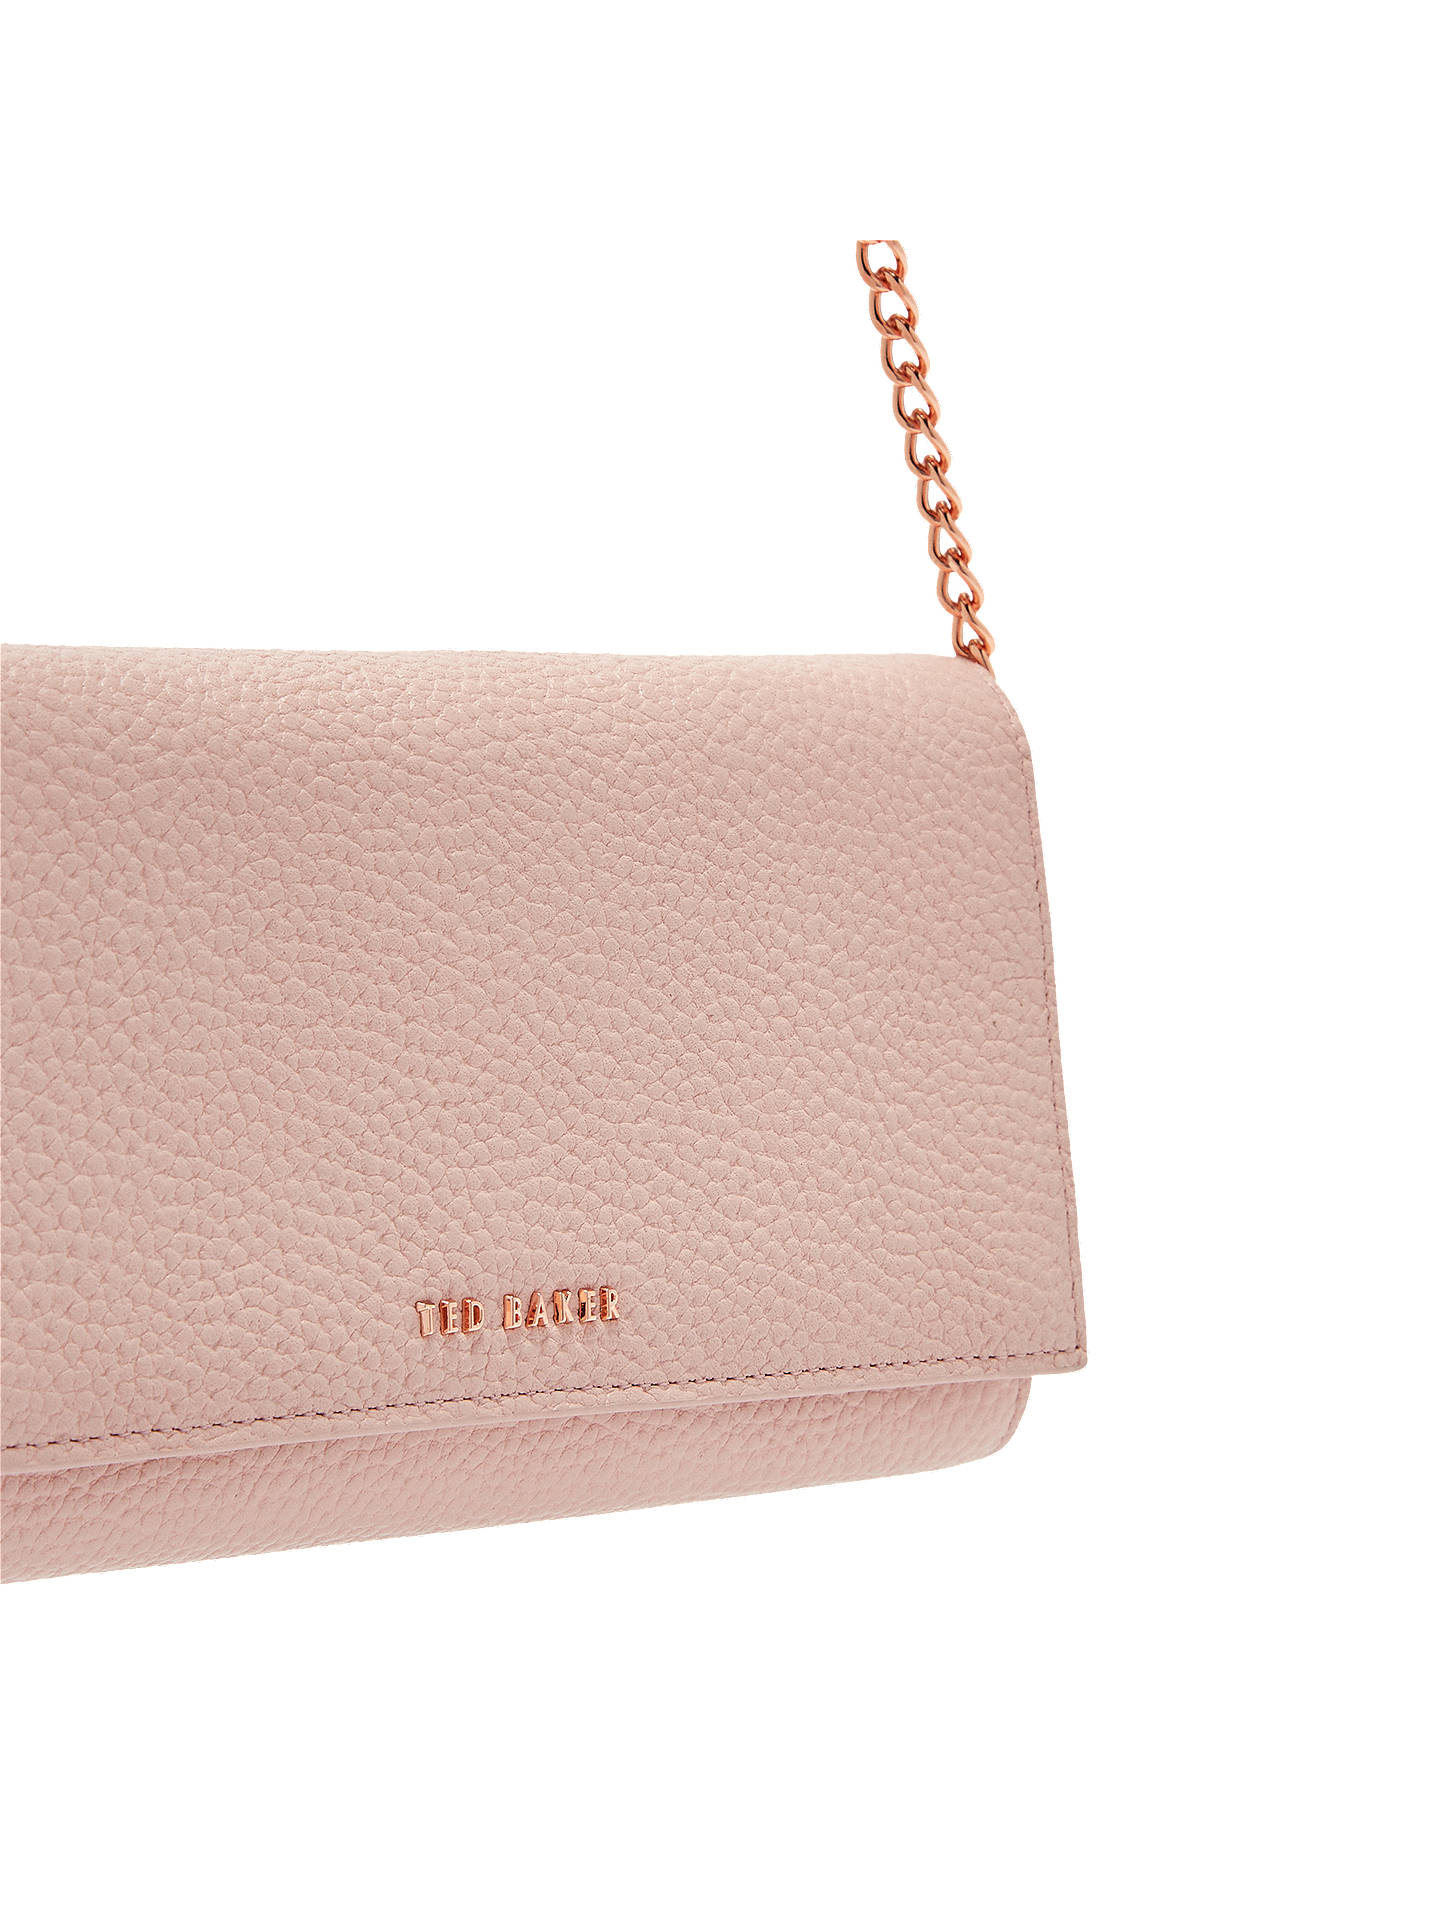 Buy Ted Baker Fiola Leather Cross Body Bag, Pink Online at johnlewis.com